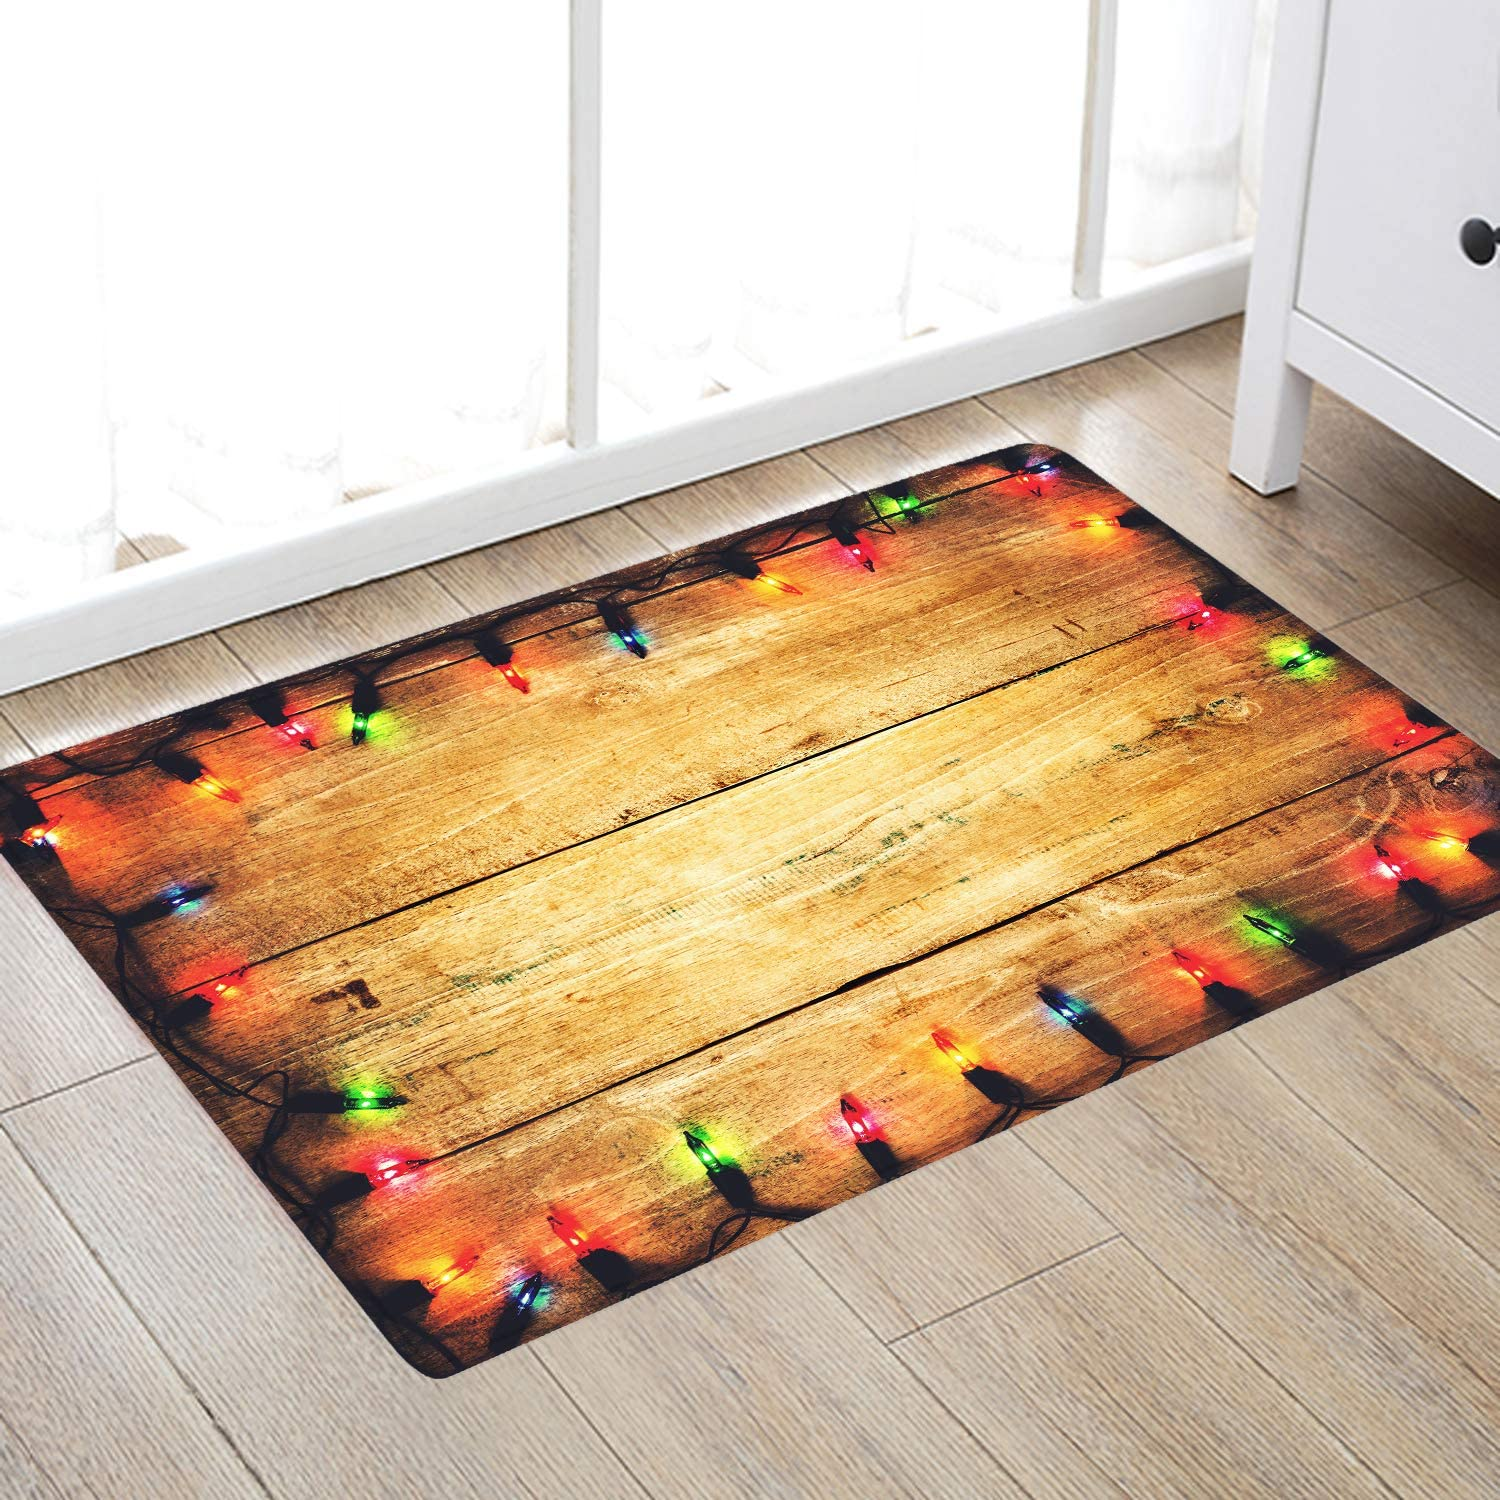 Light Color Light Board Print Memory Foam Comfort mat Non Slip Super Soft Coral Fleece rug Doormats Carpet for Kitchen Dining and Living Room 24 x 16 inches